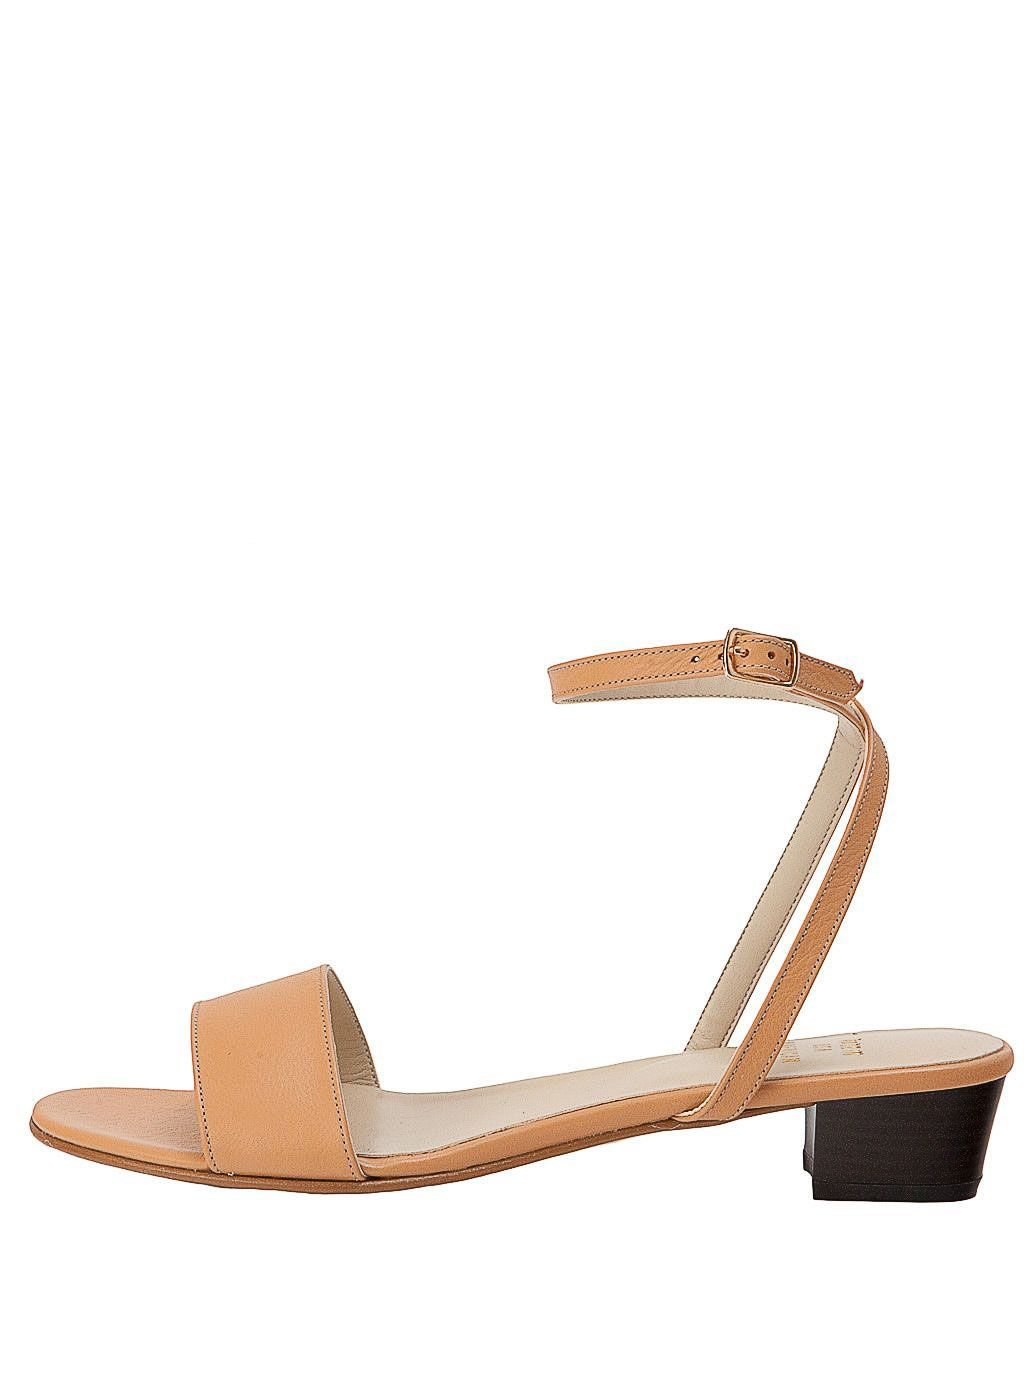 sinsndls - Solid Step-In Sandal